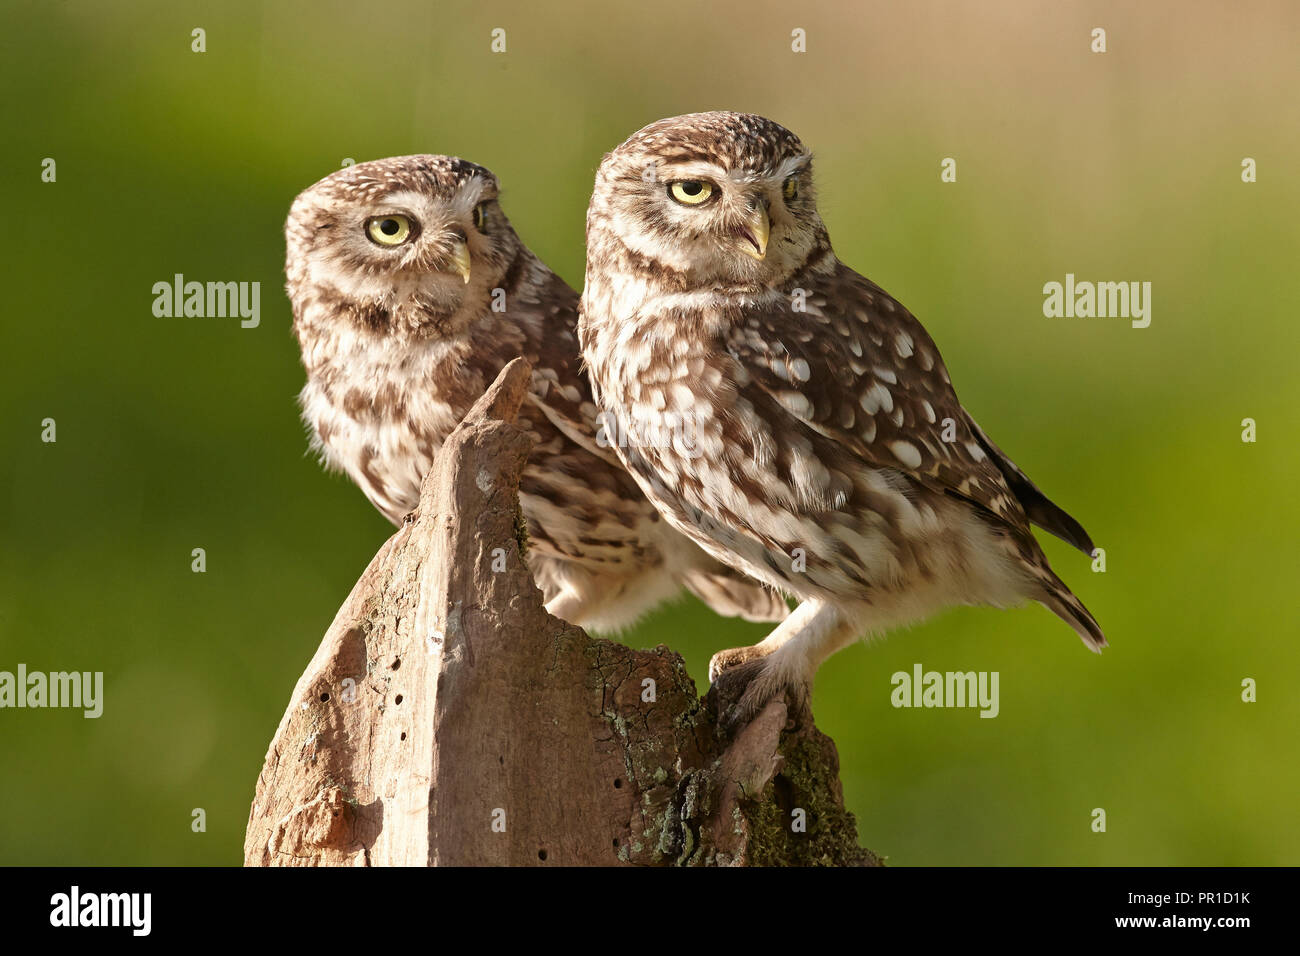 Two a pair of Little Owls, Athene noctua, East Yorkshire, UK - Stock Image